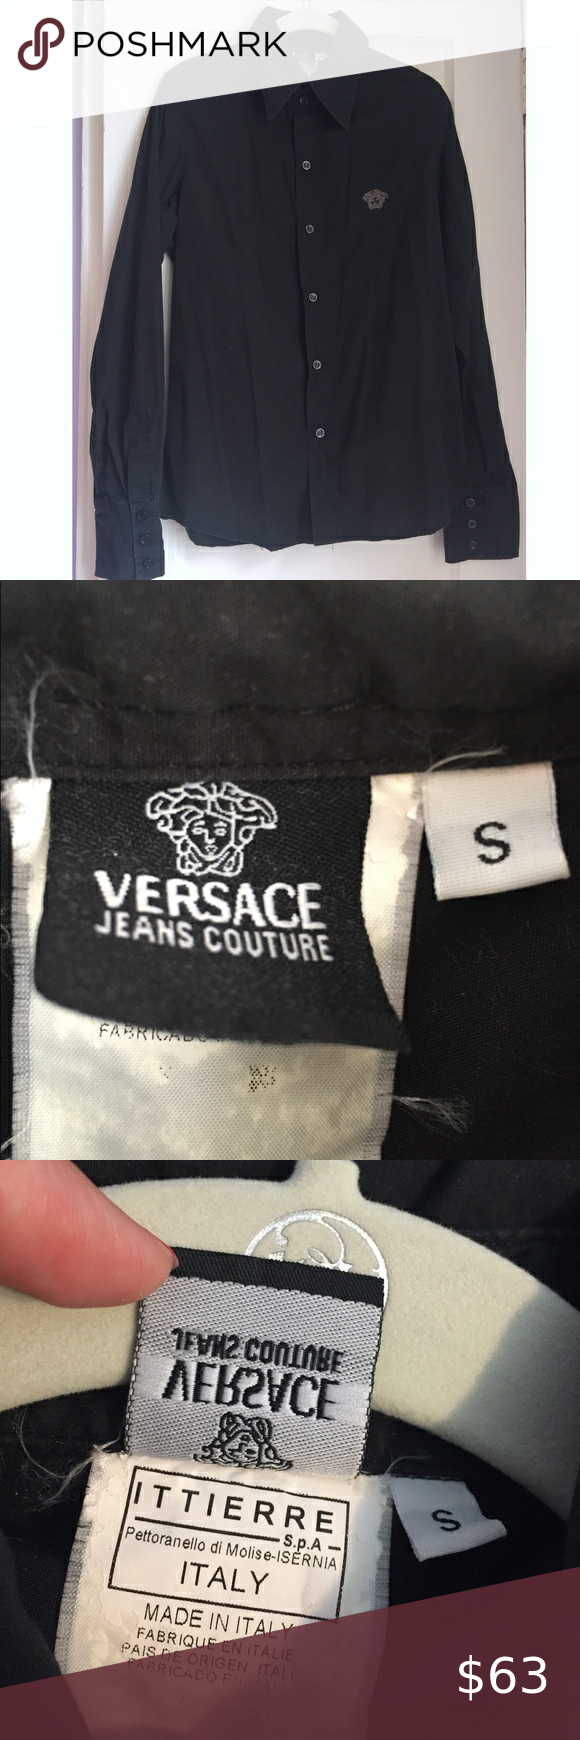 Versace Jeans Couture Button Down Shirt Size S Versace Jeans Couture Versace Jeans Couture